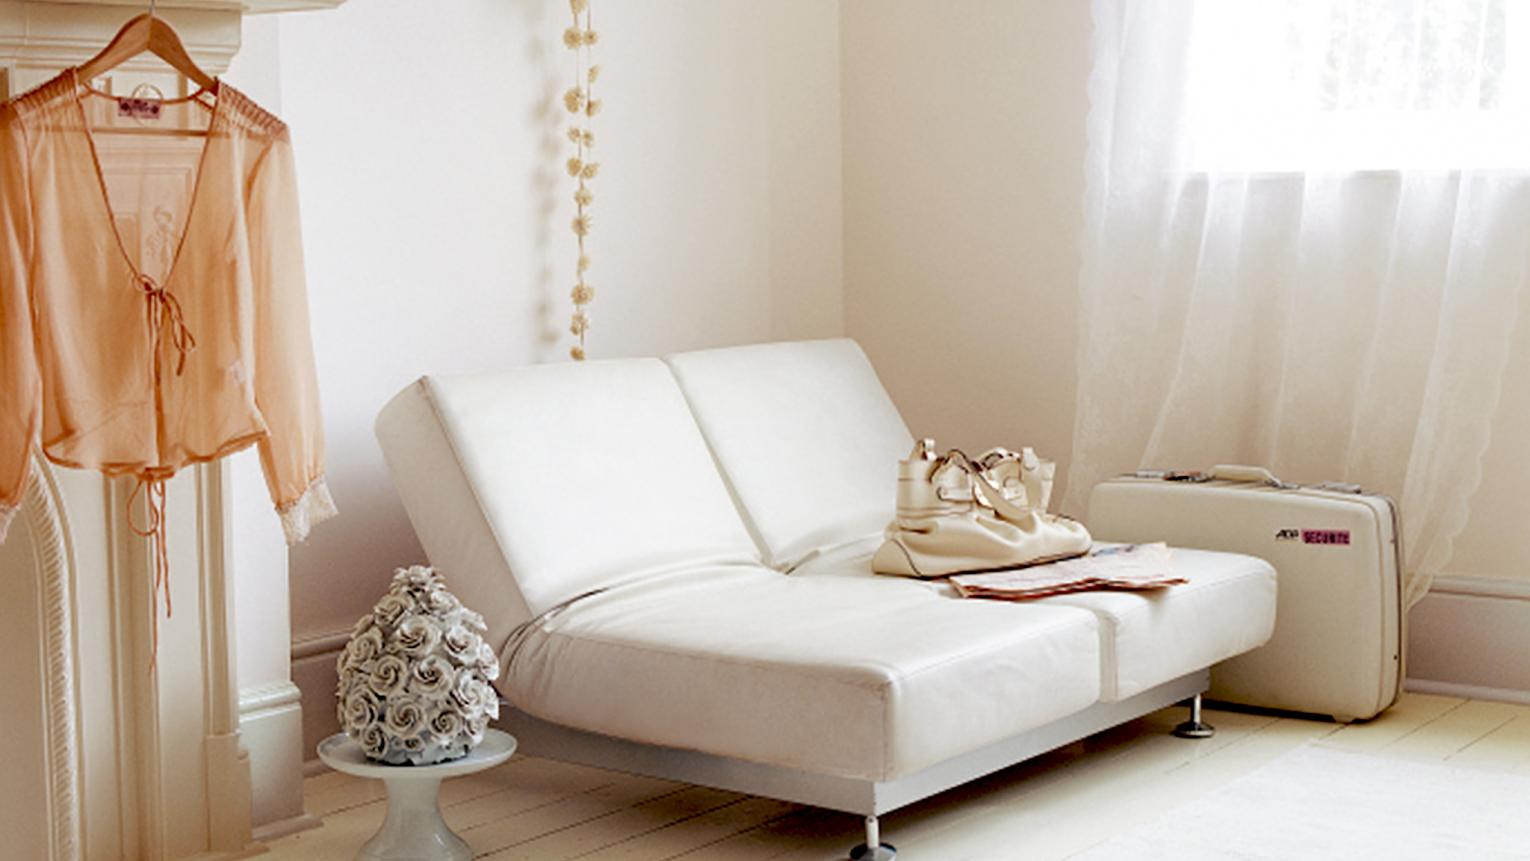 For a living room that's classic yet cosy, pair a white colour scheme with touchable textures to create a layered look.